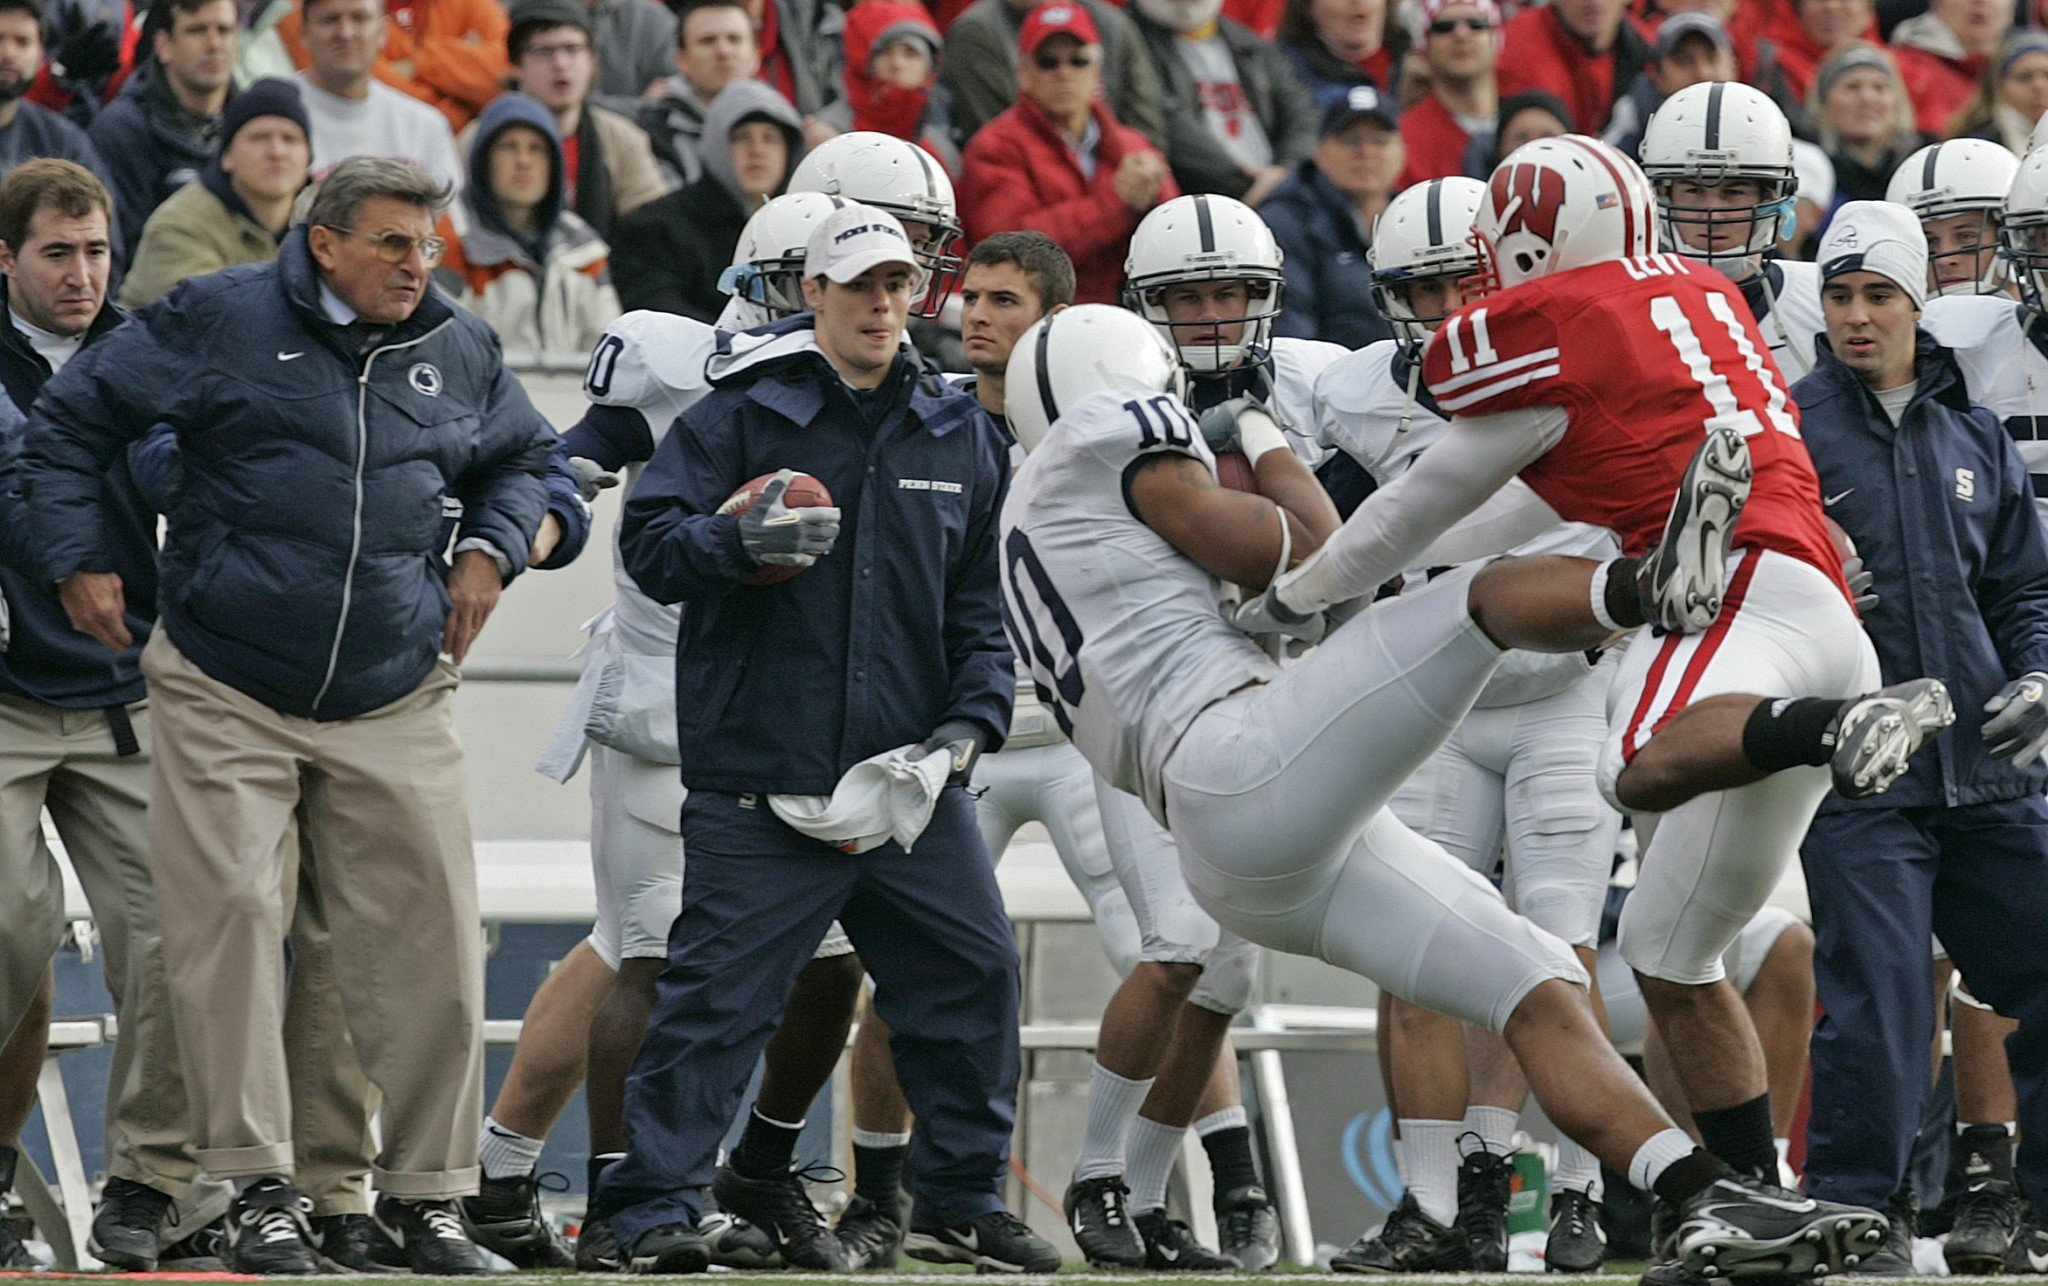 Penn State coach Joe Paterno, left, watches as Wisconsin's DeAndre Levy (11) knocks Penn State's Andrew Quarless out-of-bounds during the second half of a football game against Wisconsin Saturday, Nov. 4, 2006, in Madison, Wis. Paterno was hurt on the play and left the game. (AP Photo/Andy Manis)